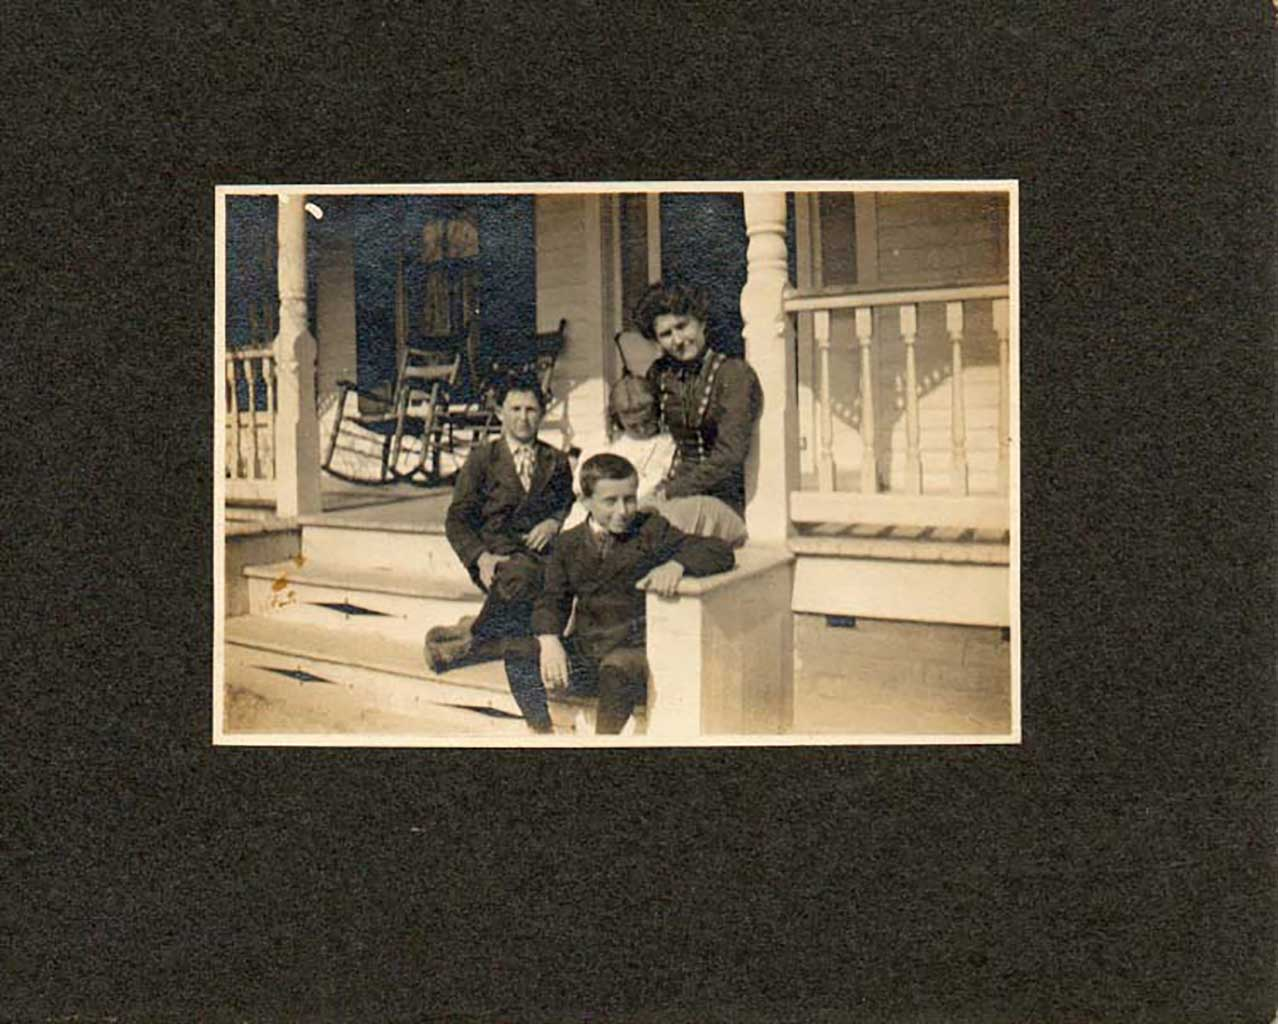 front-porch-of-gilliam-home-with-carlyle-and-madge-holding-mary-gilliam-with-oliver-gilliam-a-cousin-and-ray-img045